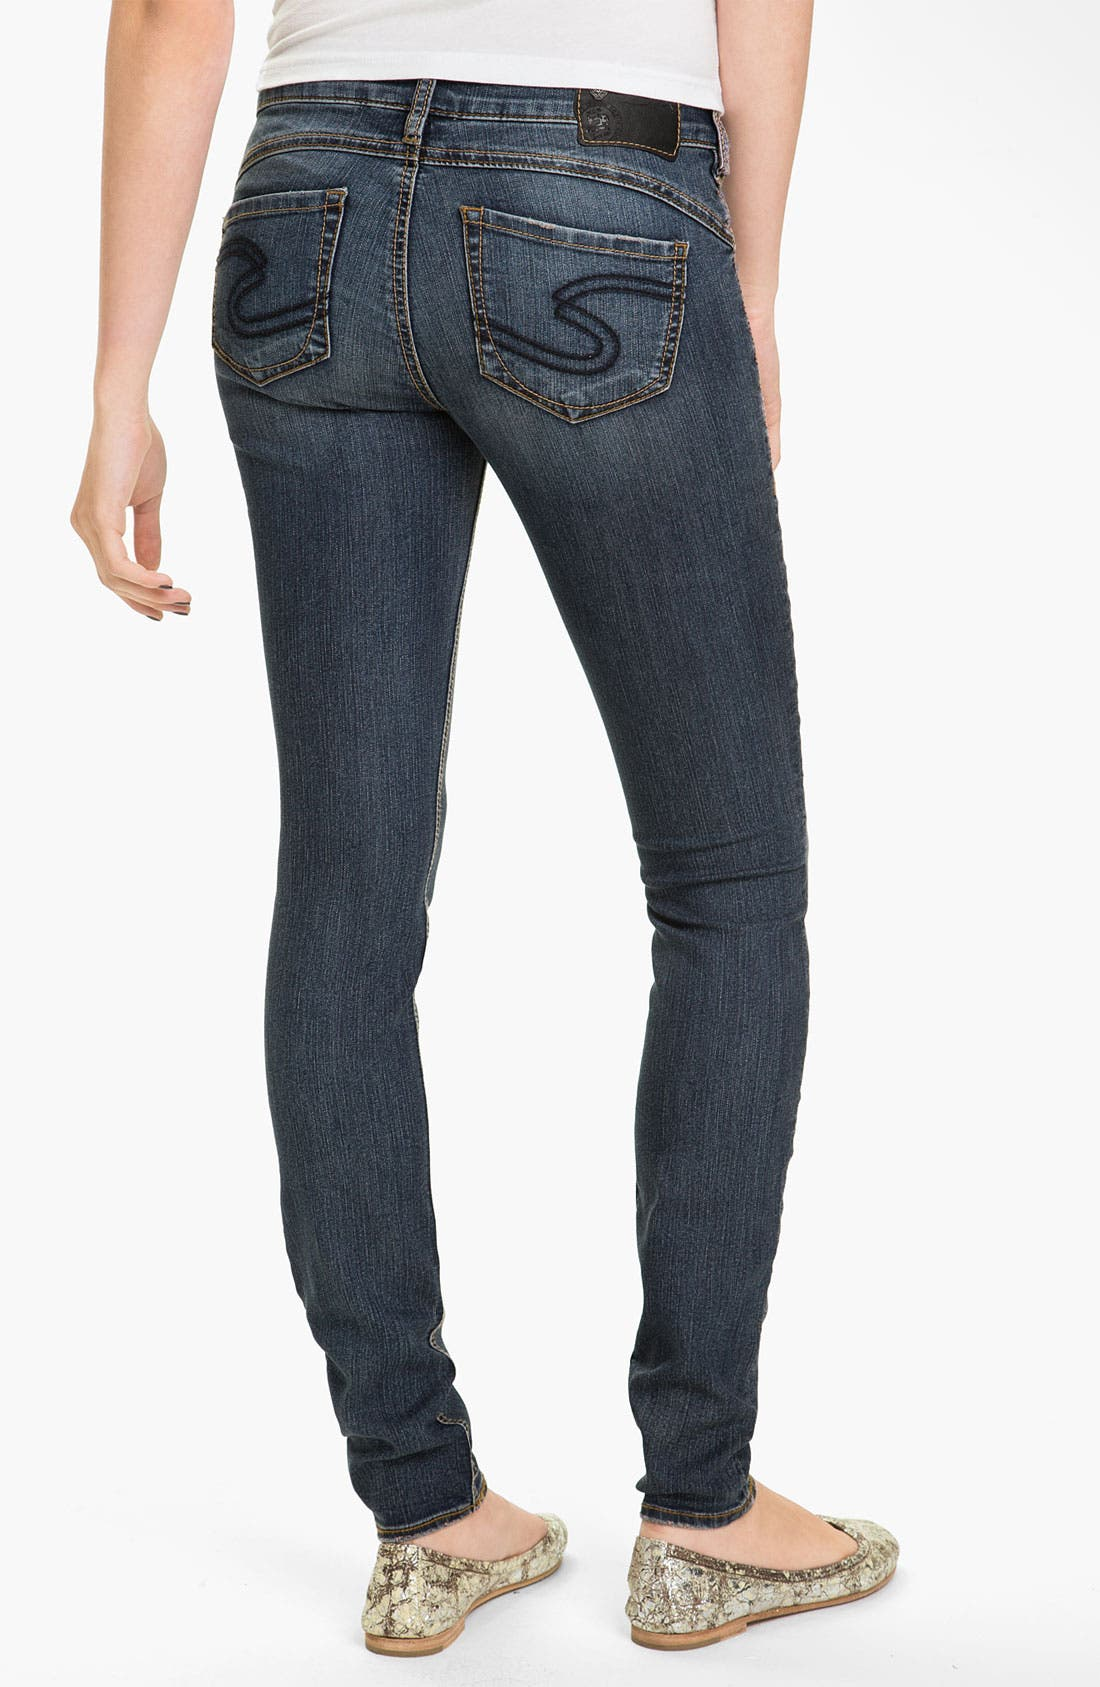 Alternate Image 1 Selected - Silver Jeans Co. 'Camden Rose' Skinny Jeans (Juniors)